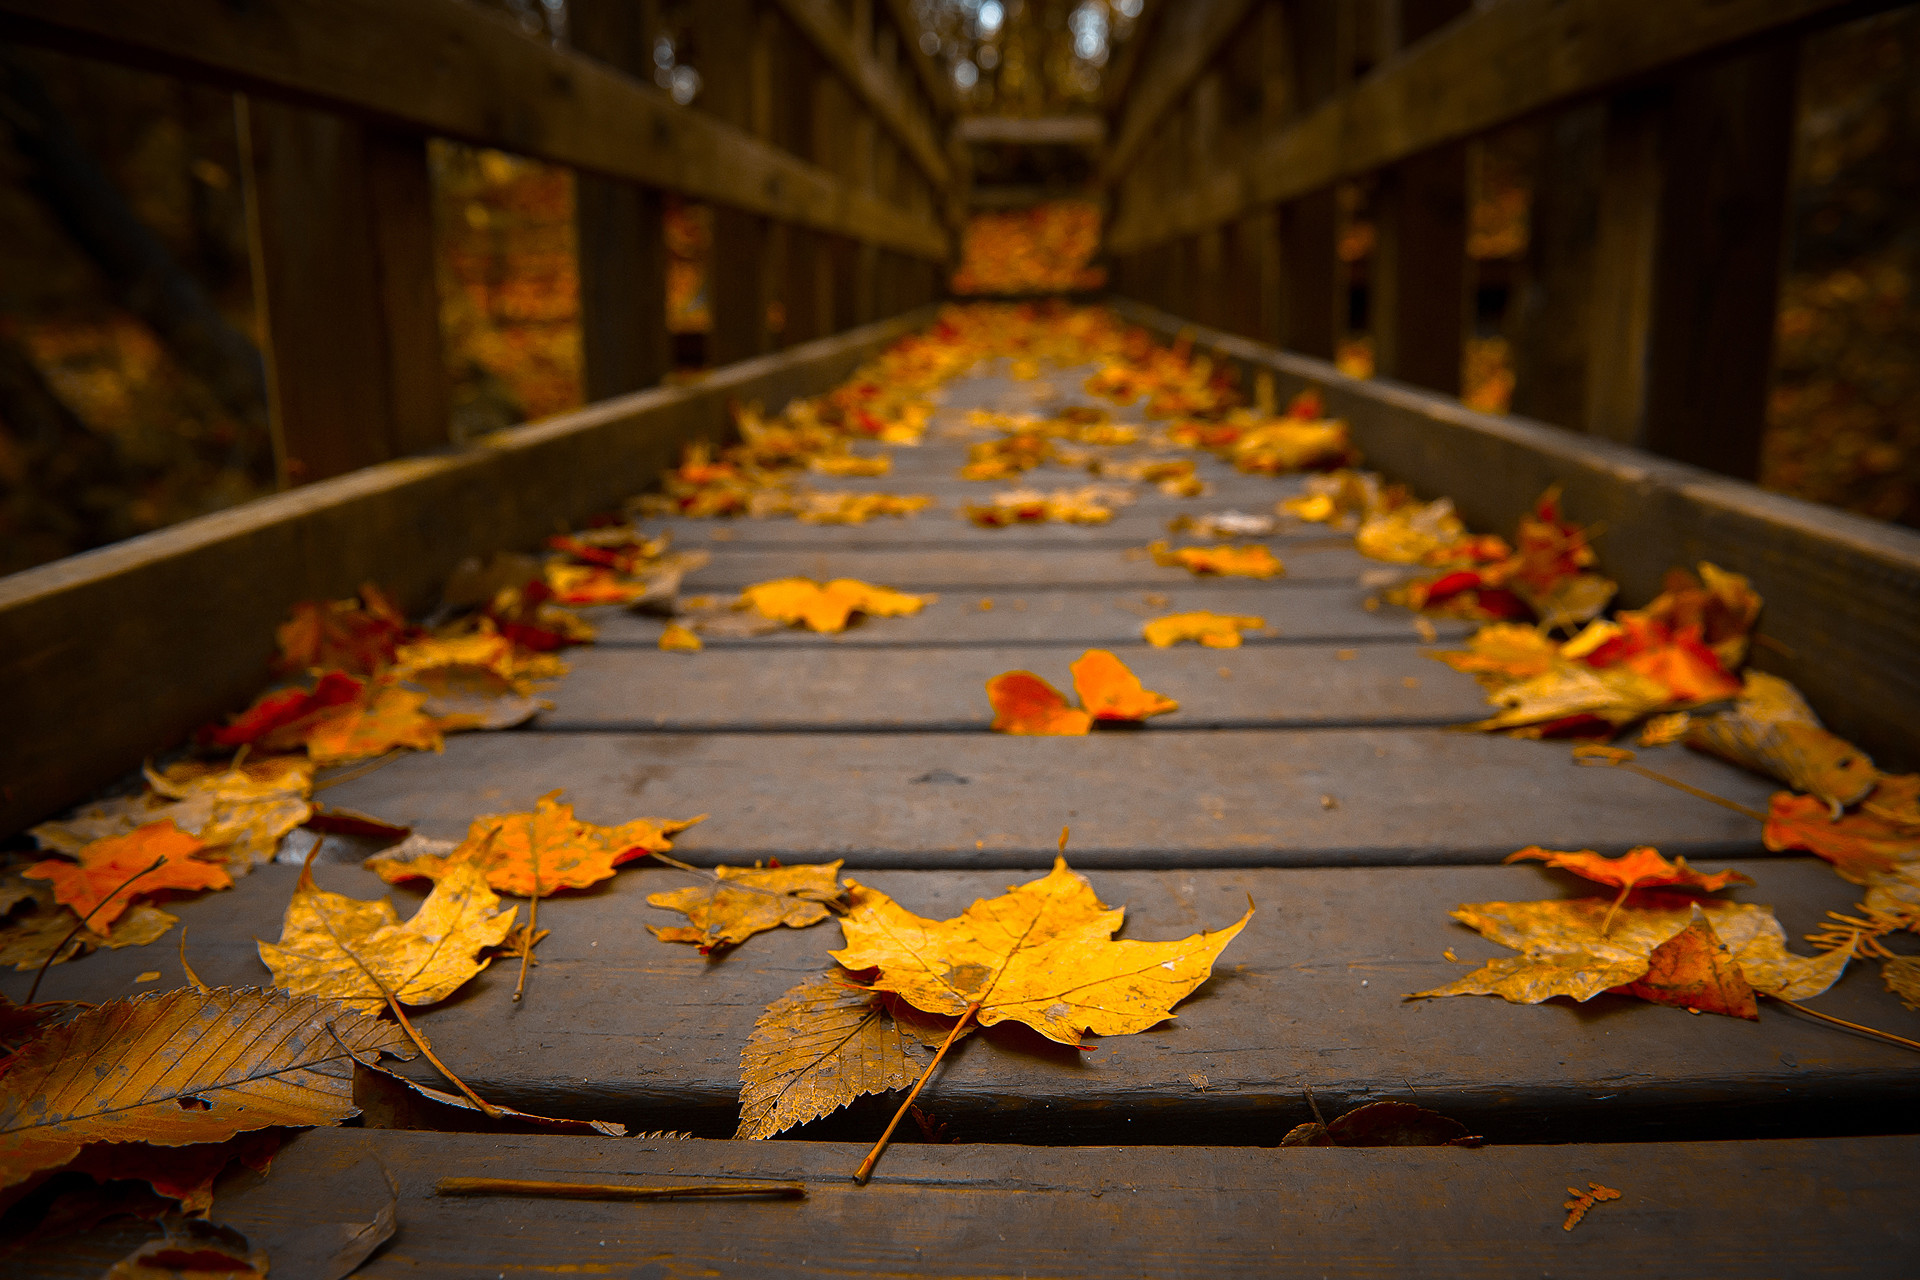 Autumn Hd Wallpaper 75 Pictures